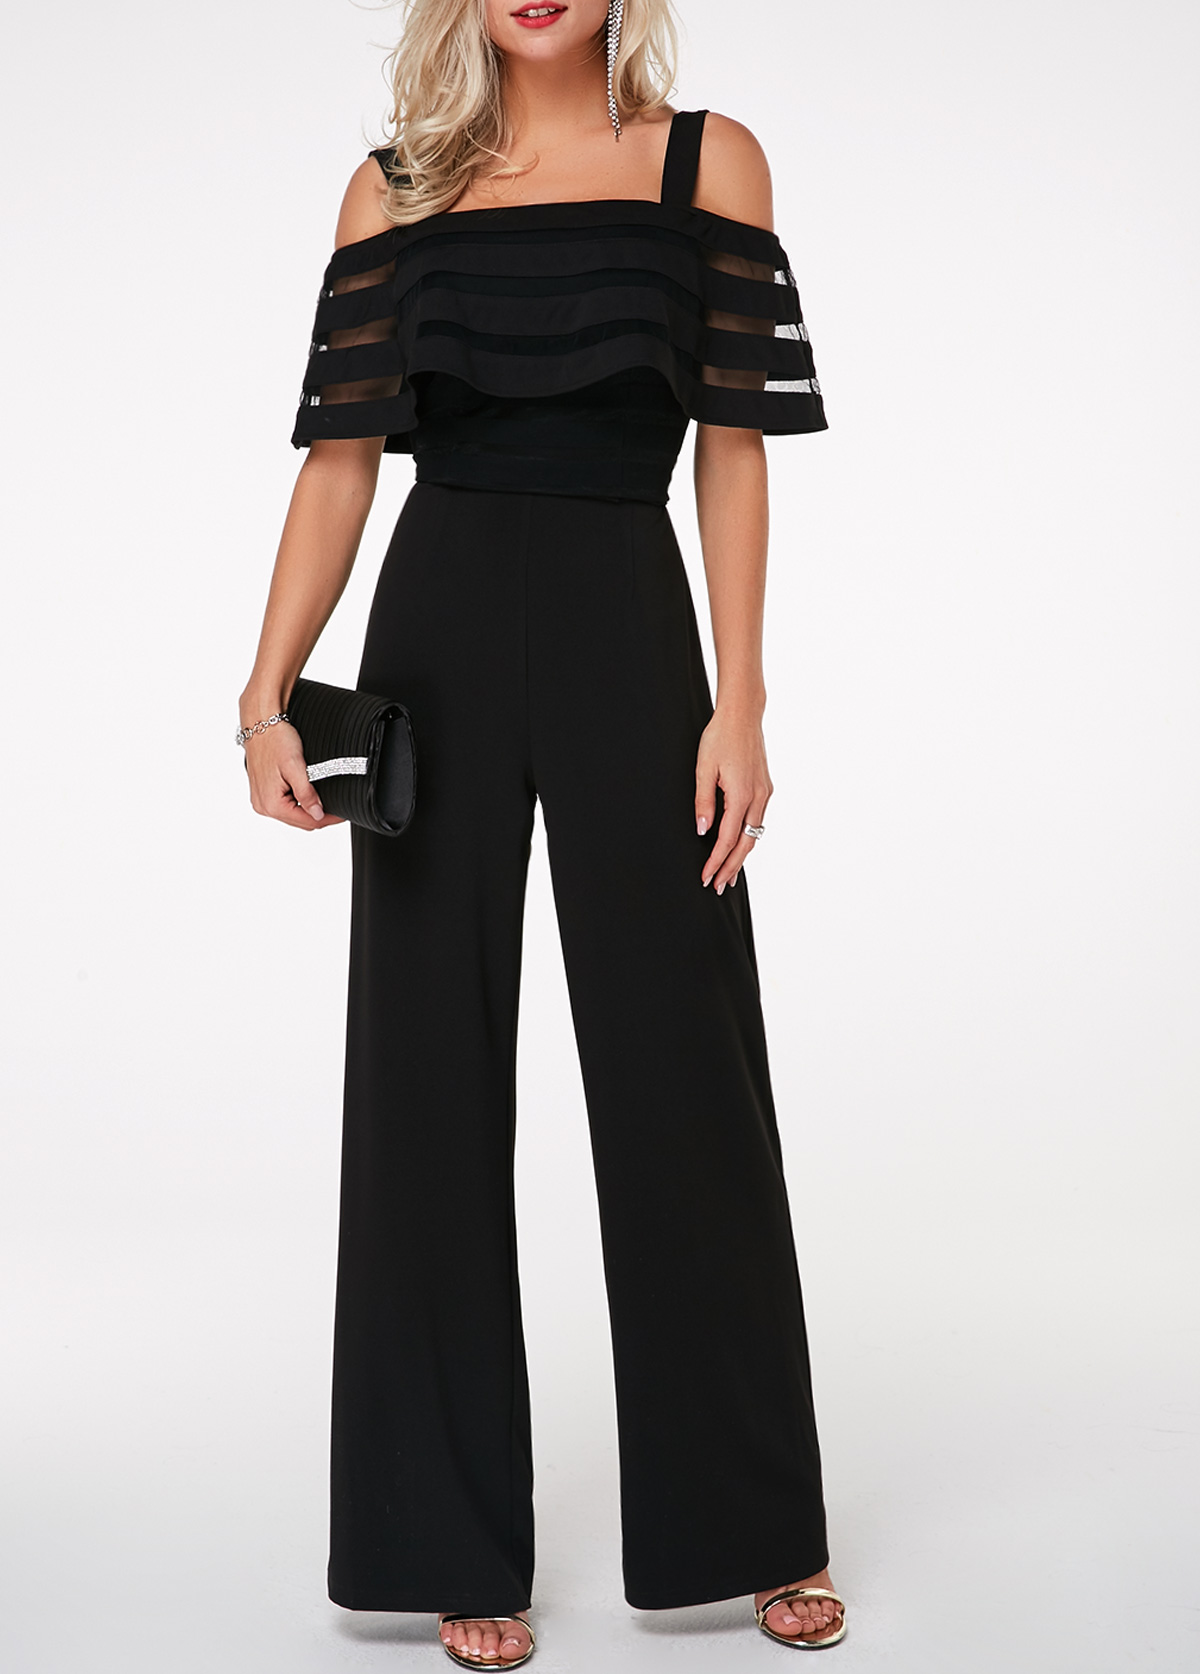 Strappy Cold Shoulder Ruffle Overlay Black Jumpsuit